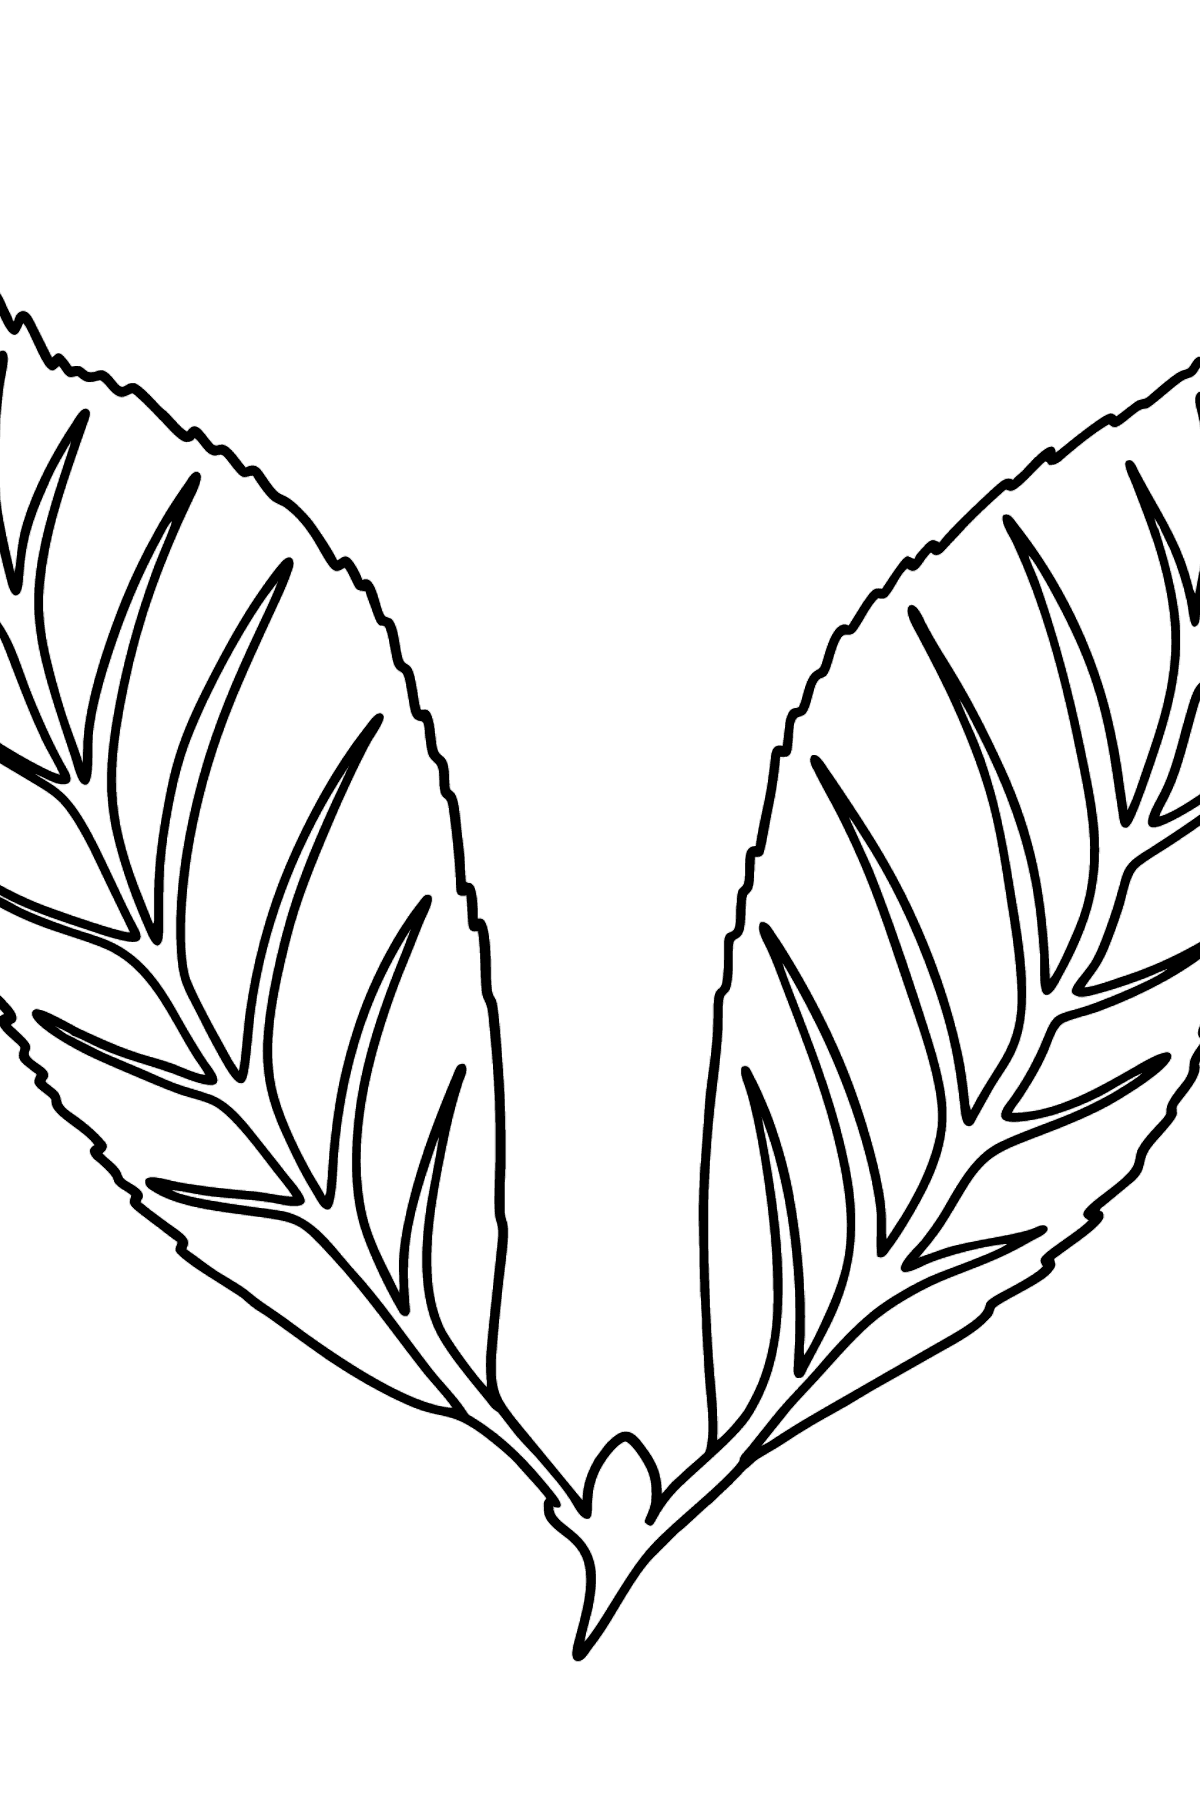 Cherry Leaf coloring page - Coloring Pages for Kids